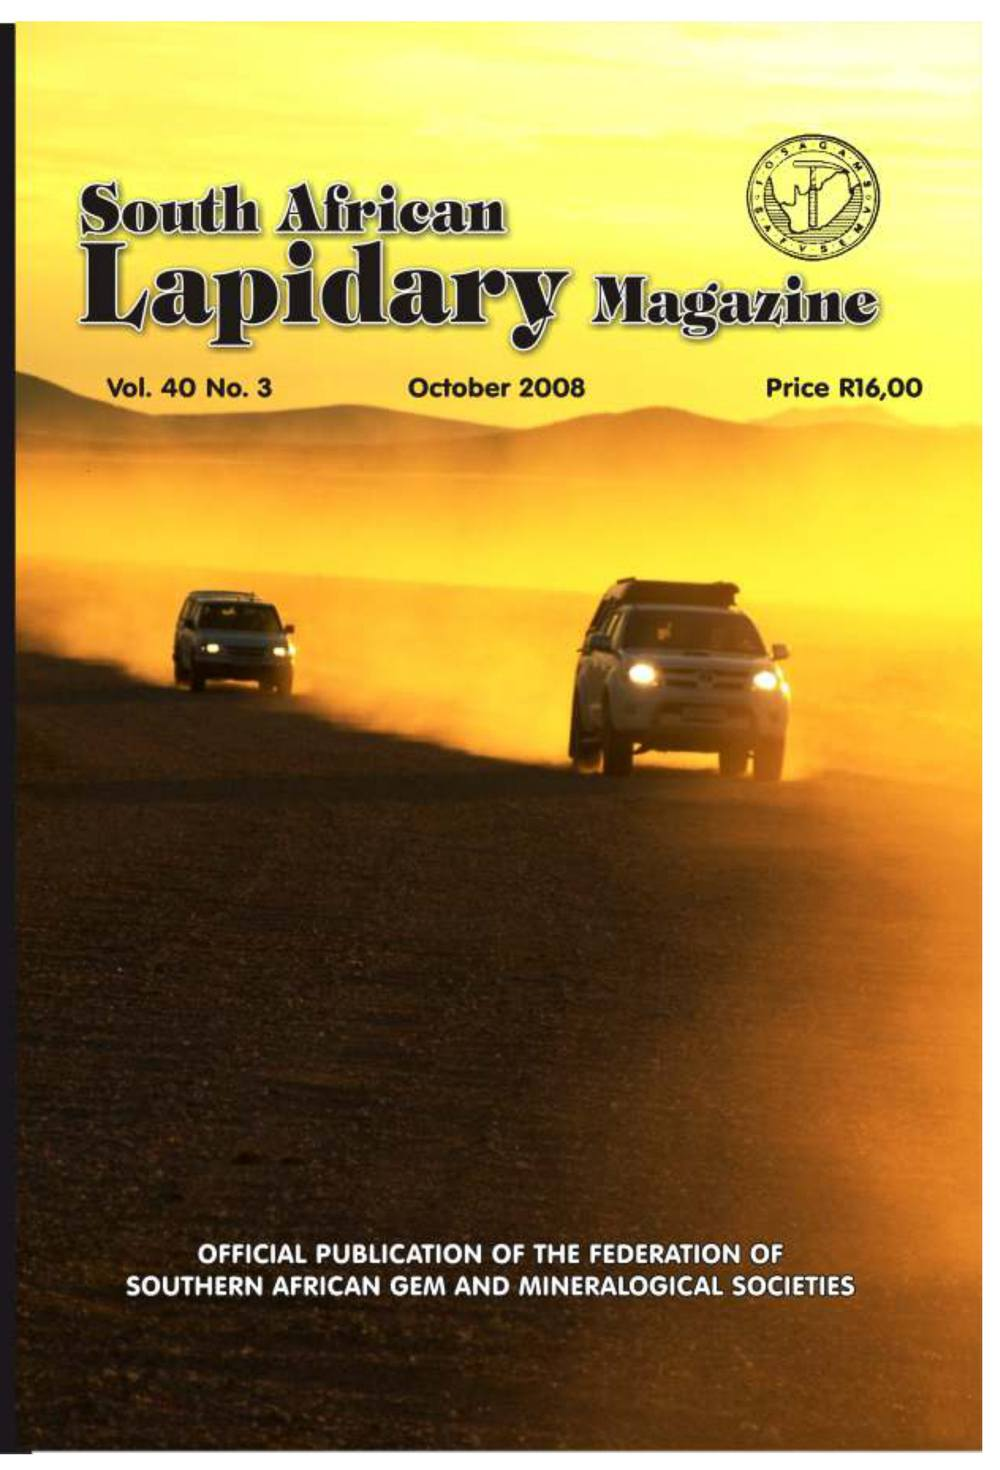 South African Lapidary Magazine - Namibian Gemboree 2008